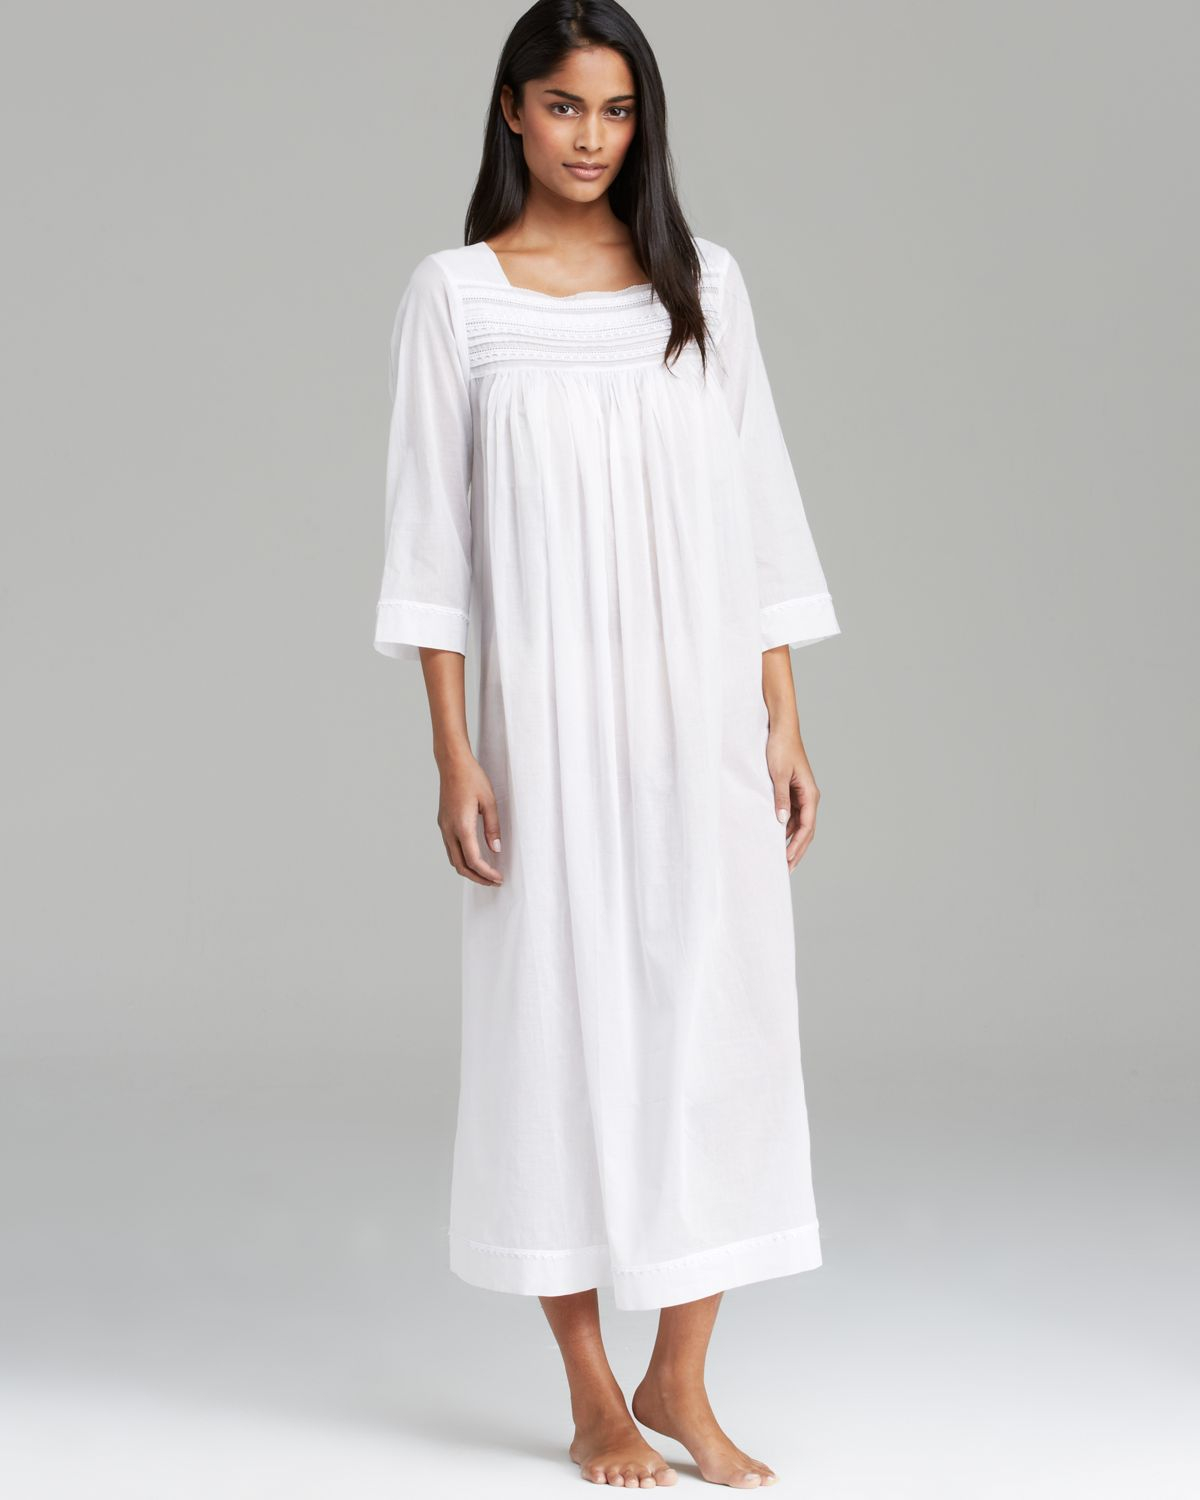 b907e9d612 Lyst - Oscar de la Renta Sheer Serenity Cotton Long Nightgown in White